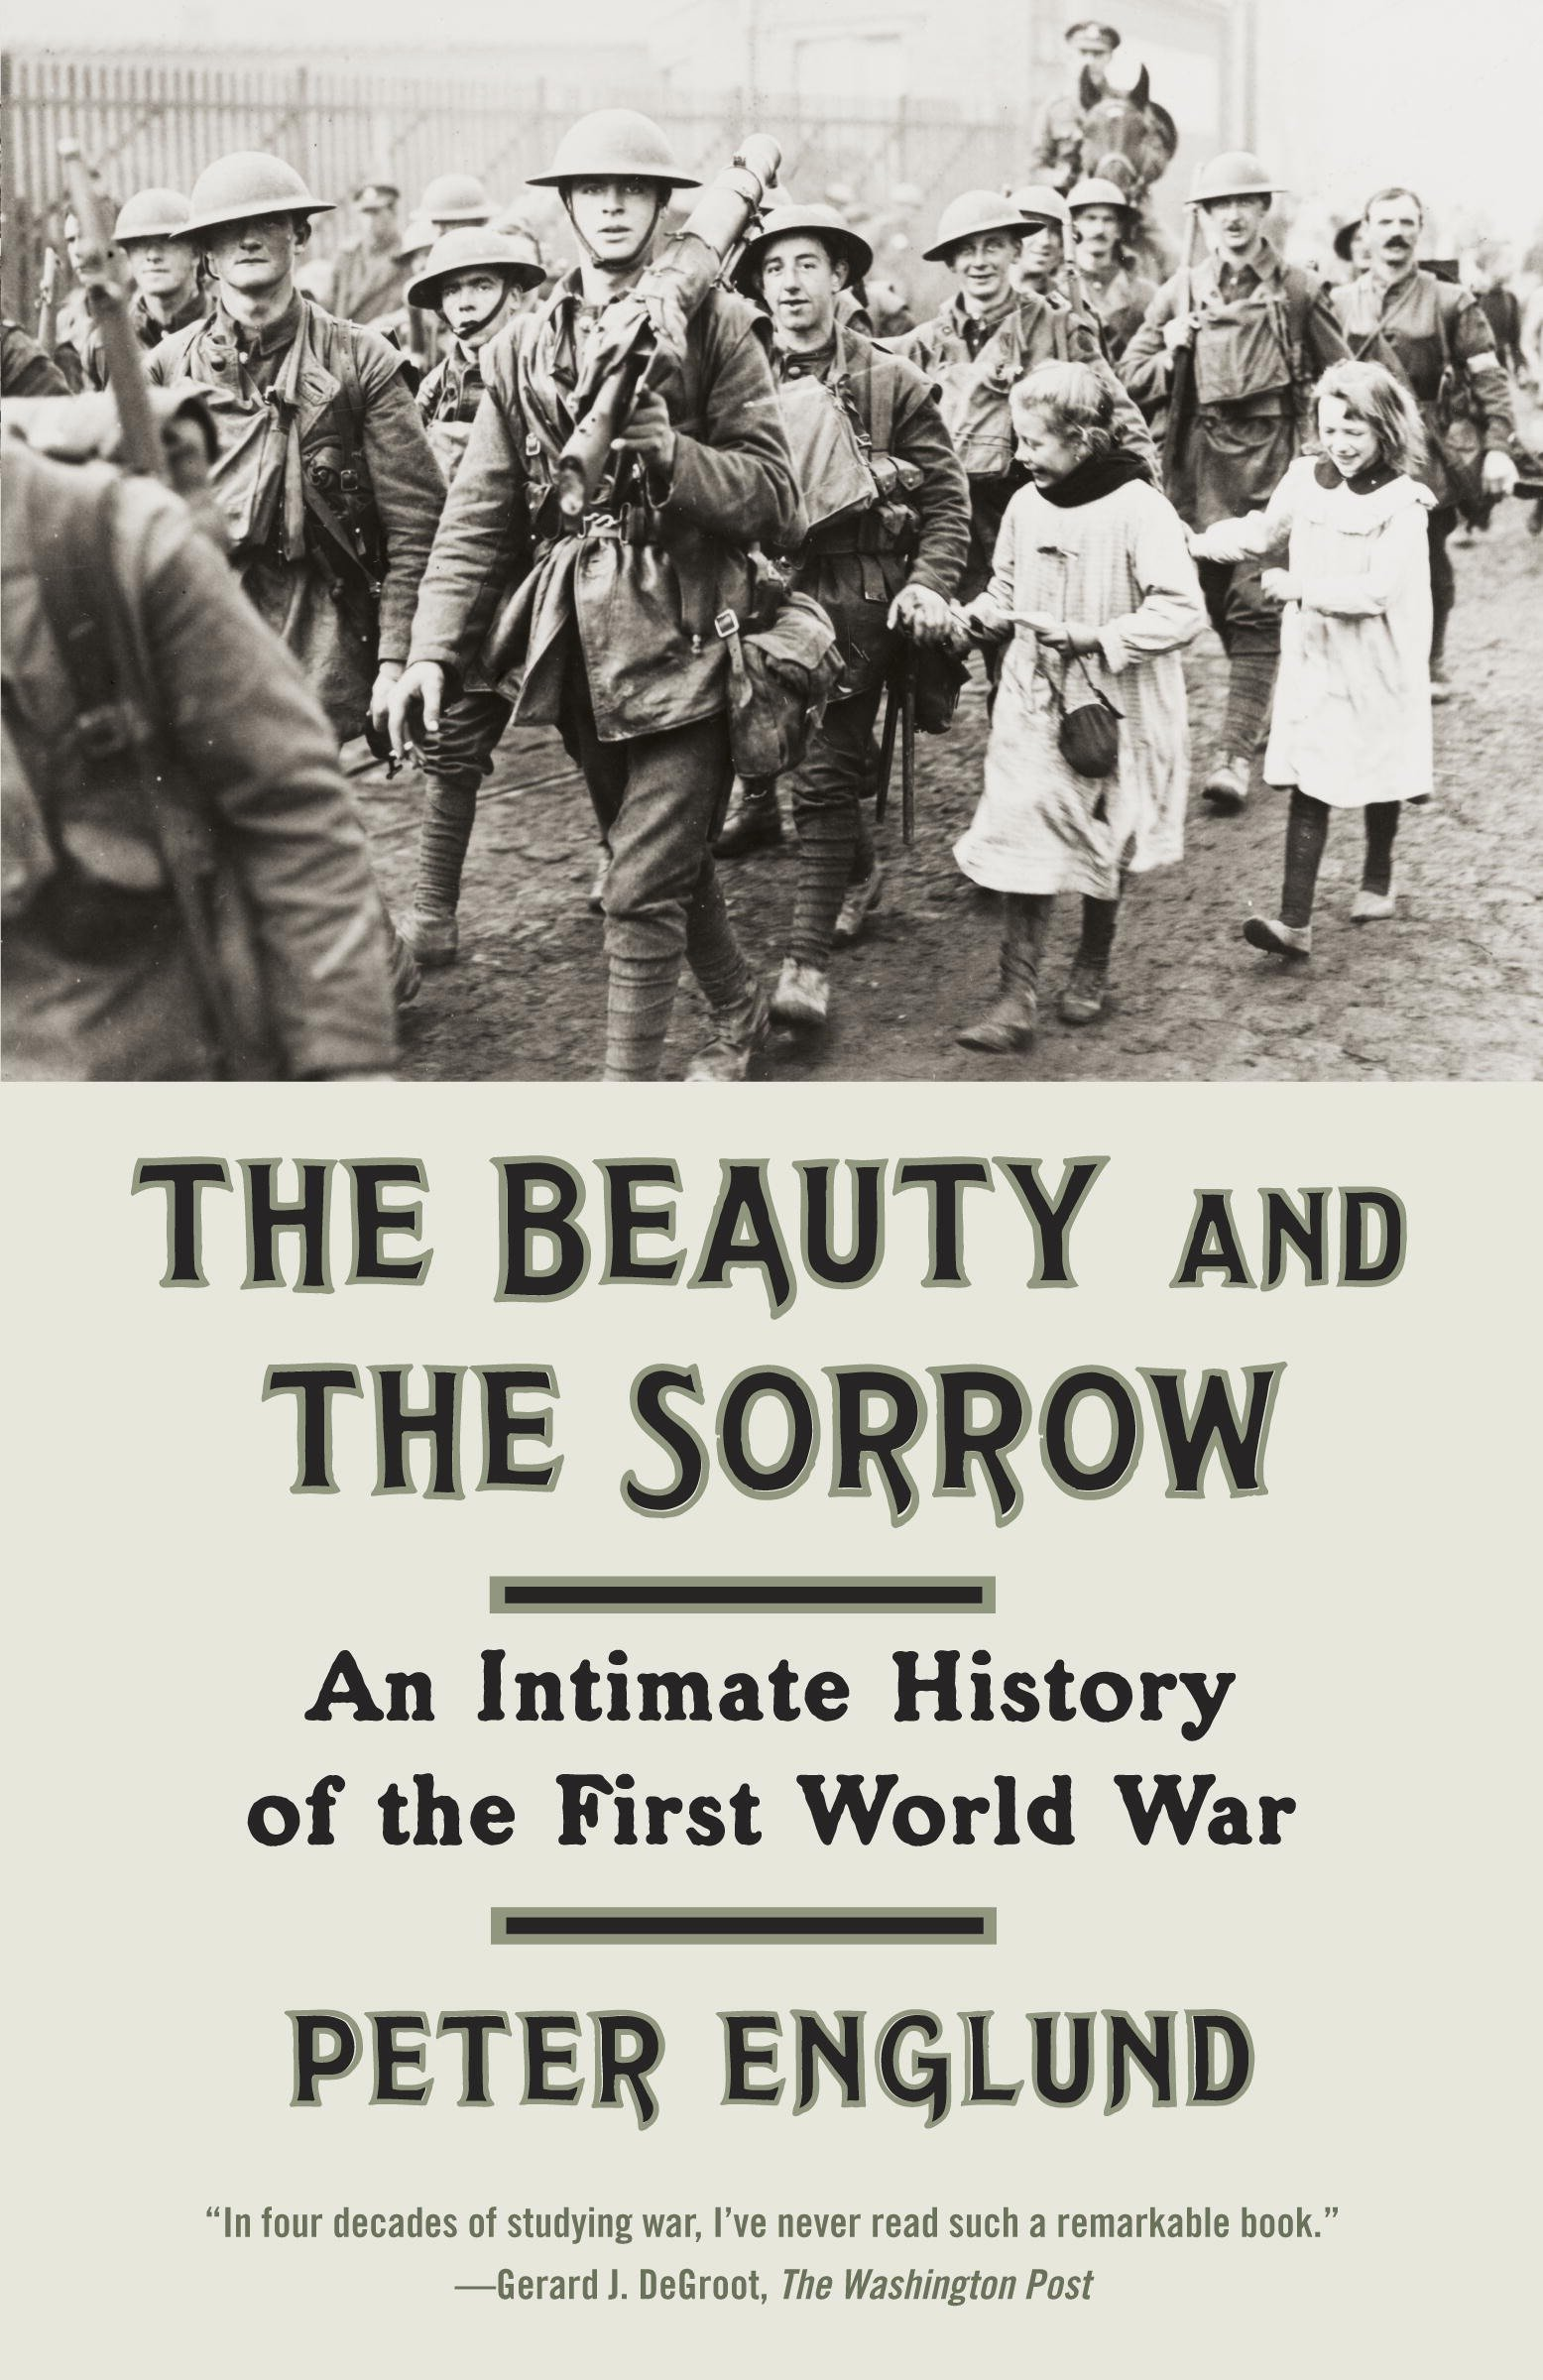 The Beauty and the Sorrow An Intimate History of the First World War